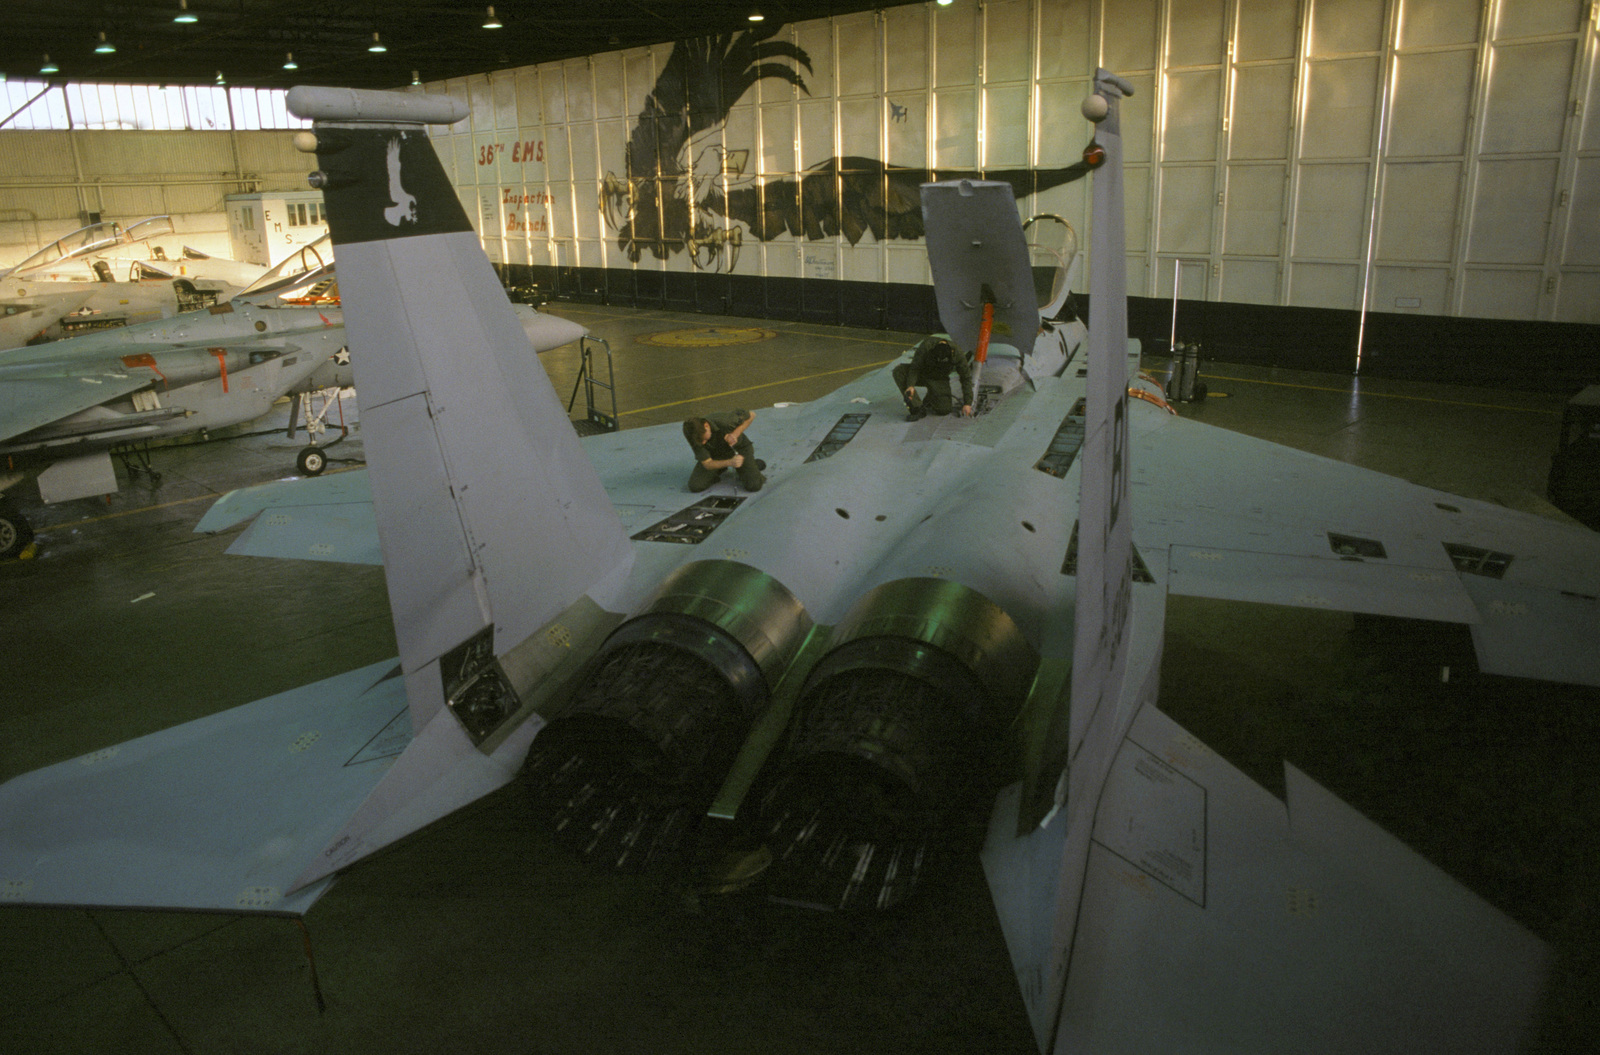 An F-15C Eagle aircraft undergoes a 100-hour post flight inspection in the phase hangar